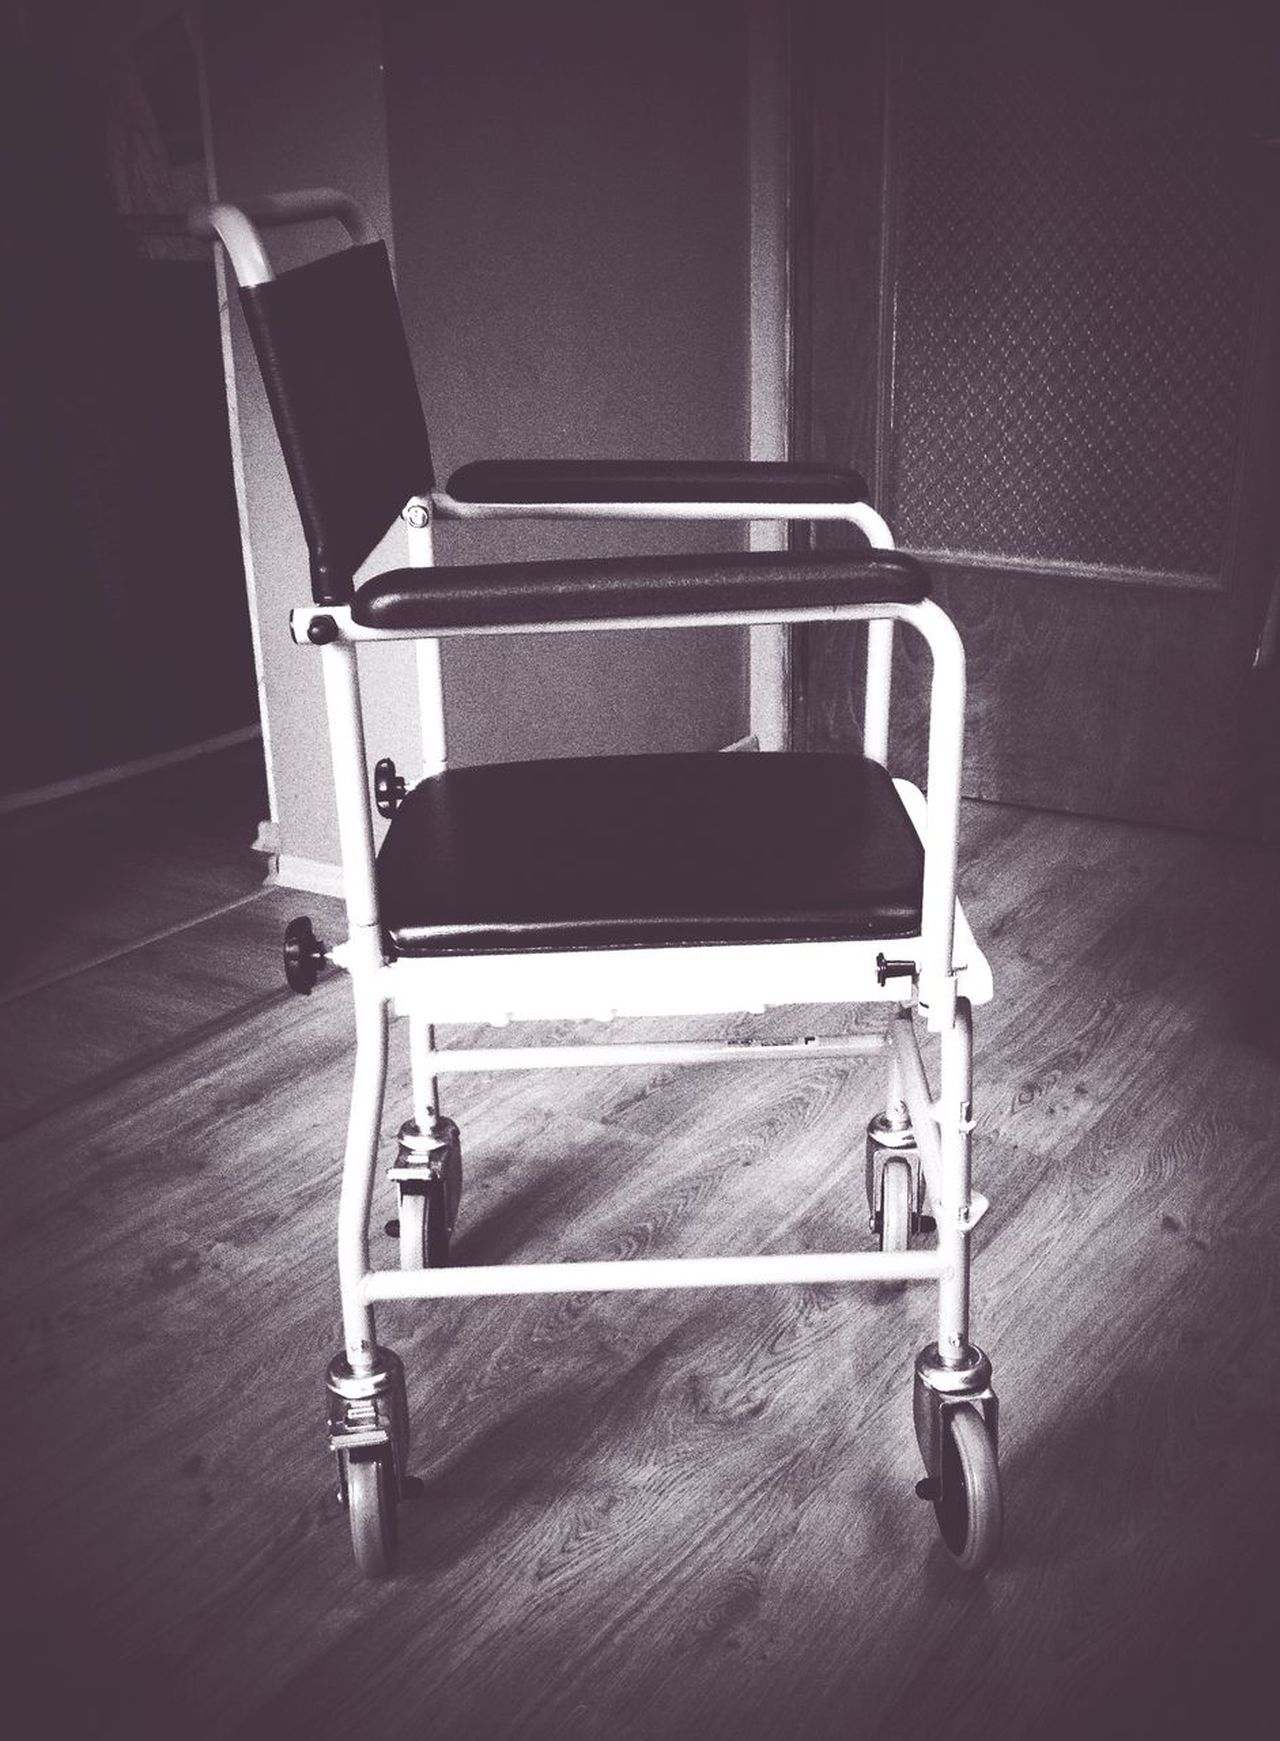 Wheelchair Disabled Health Wheelchair Disabled Accessories Black And White